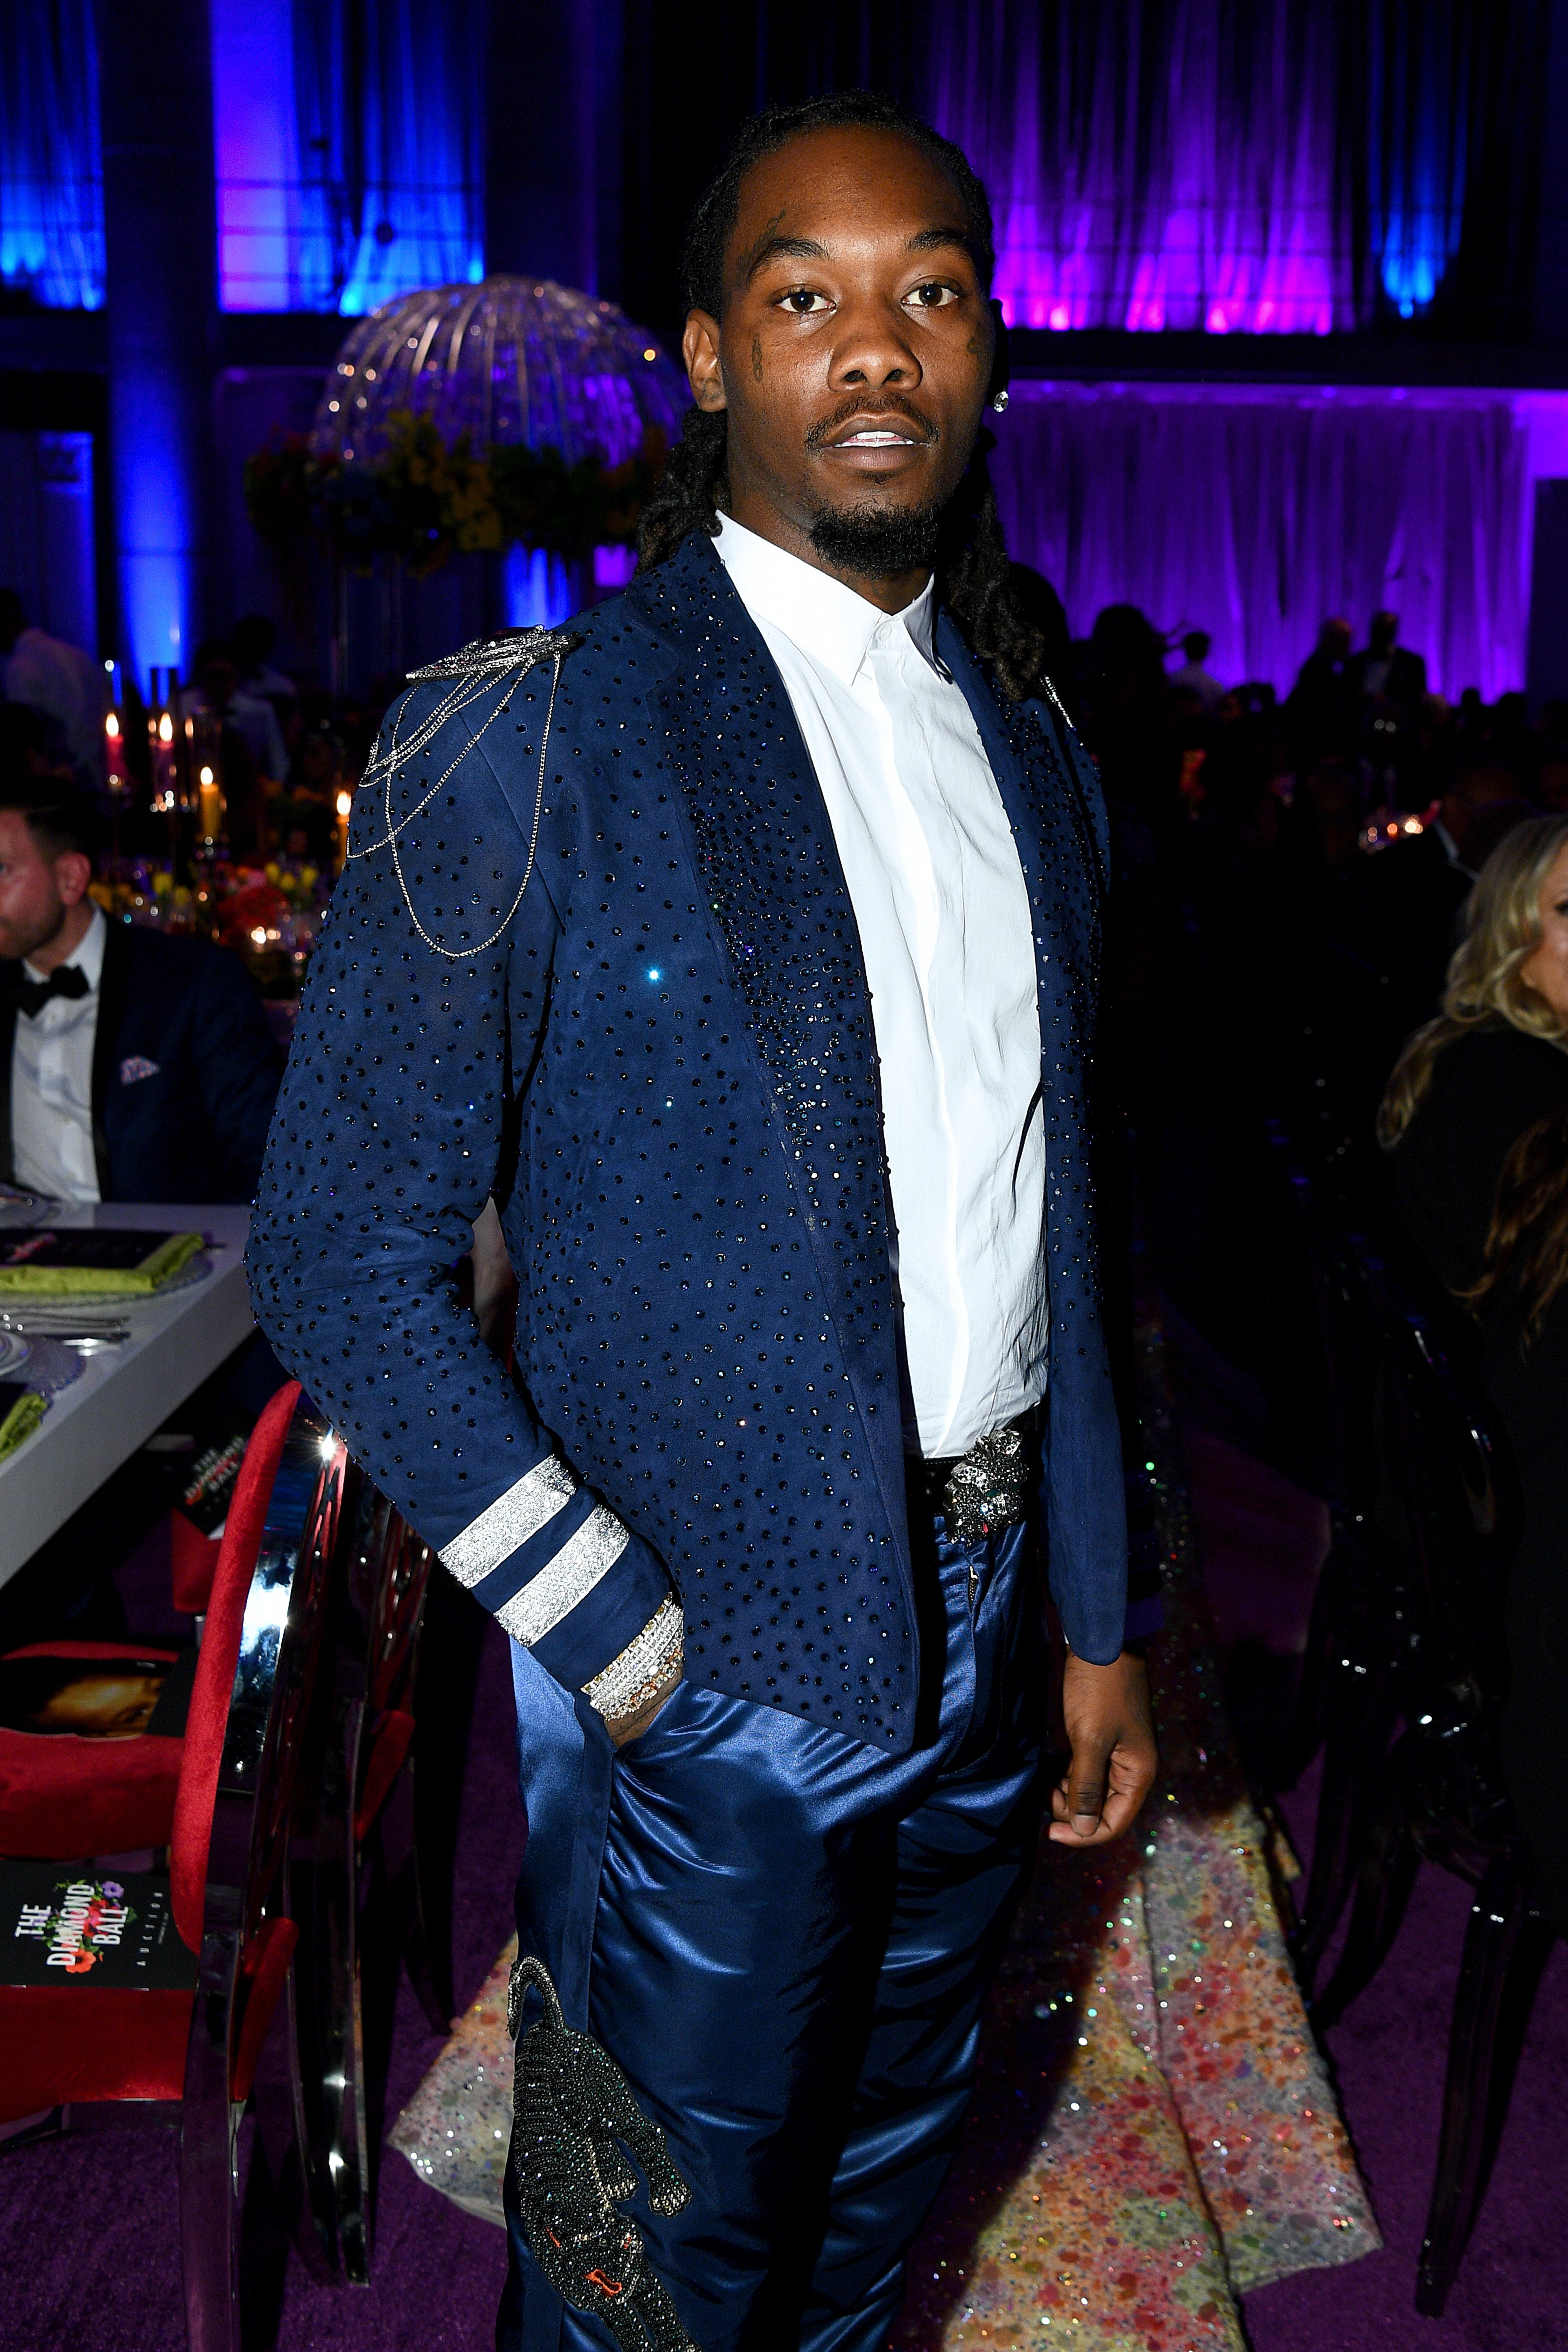 Offset at Rihanna's 5th Annual Diamond Ball in New York City in September 2019 | Photo: Getty Images